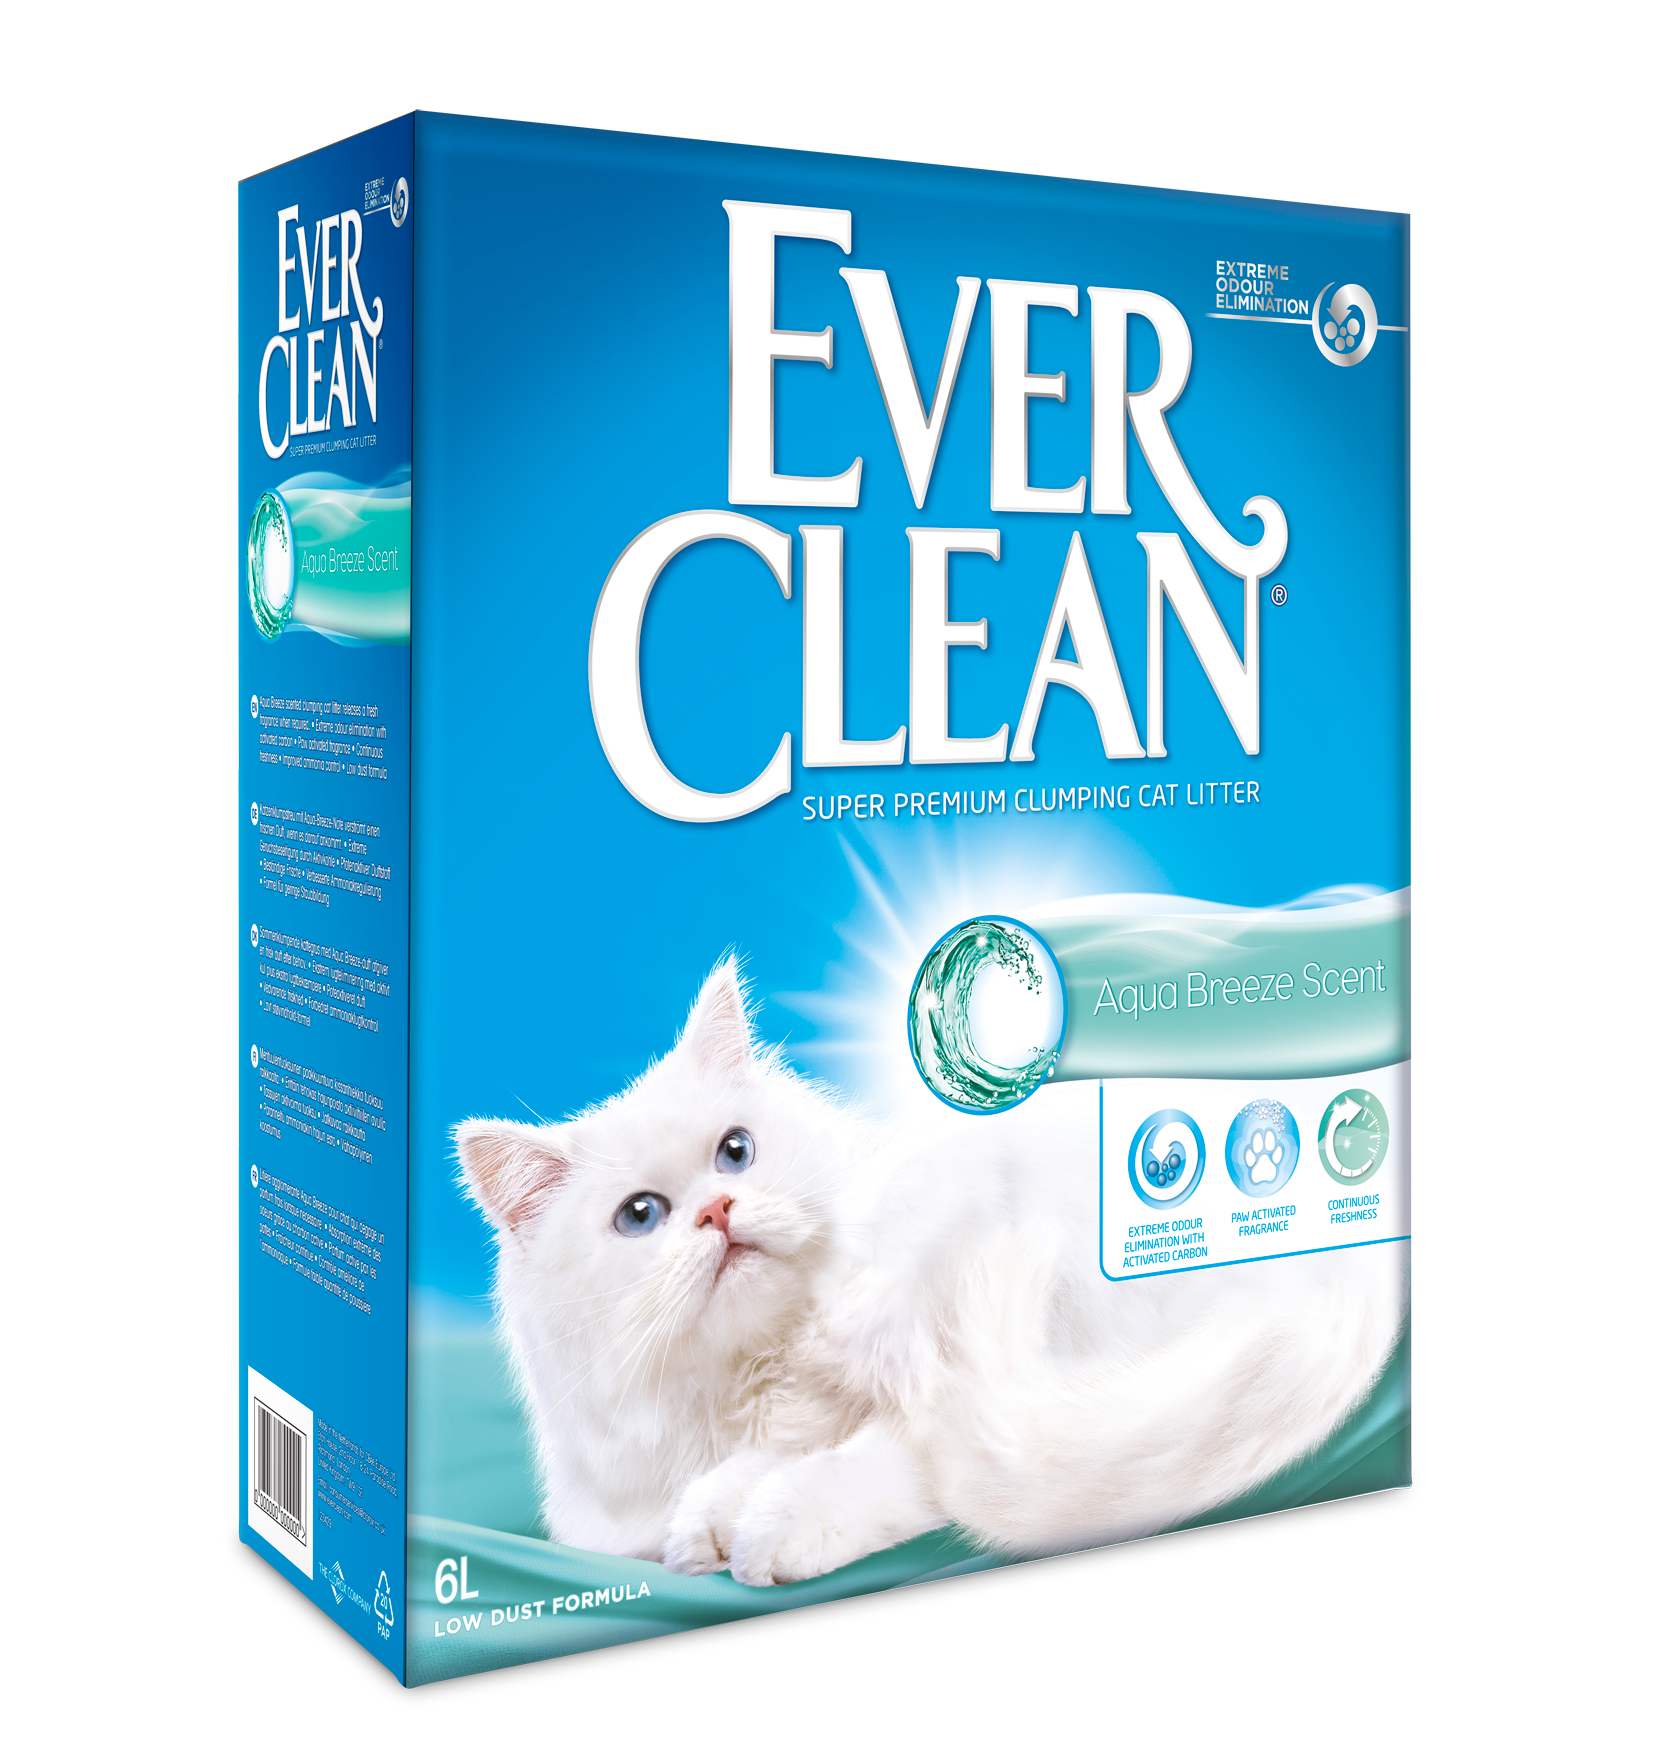 EVER CLEAN Aqua Breeze 6L